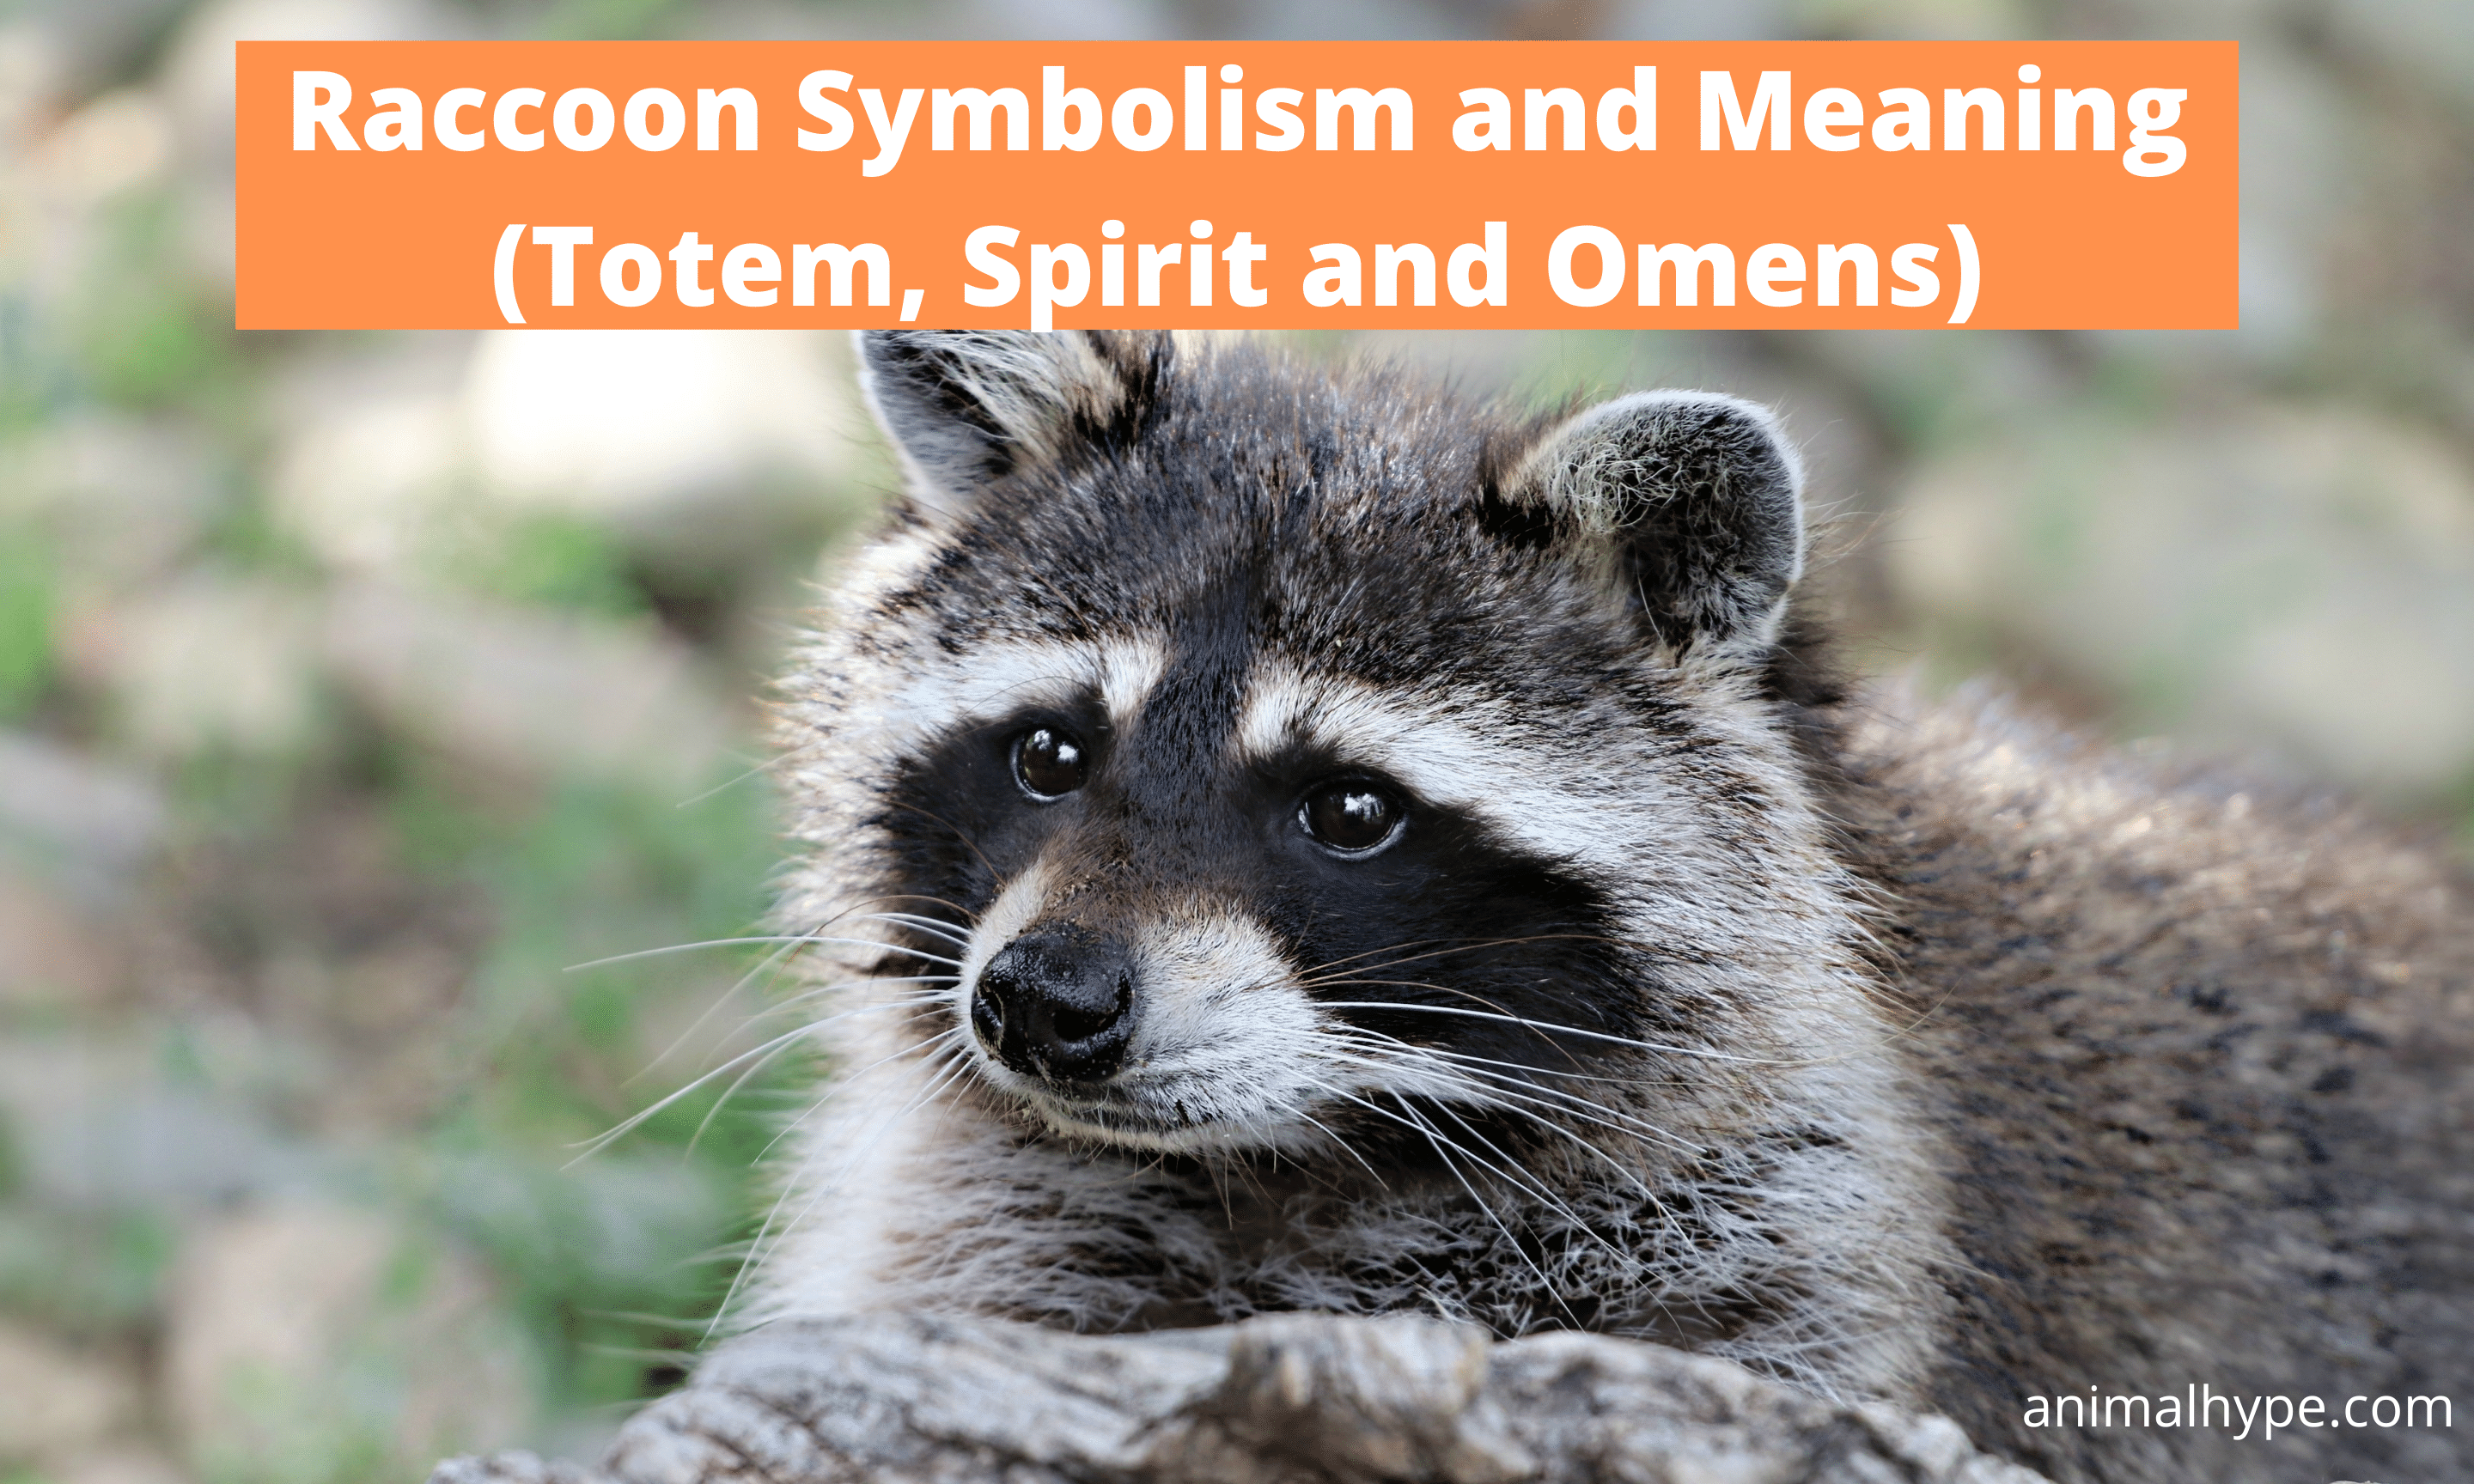 Raccoon Symbolism and Meaning